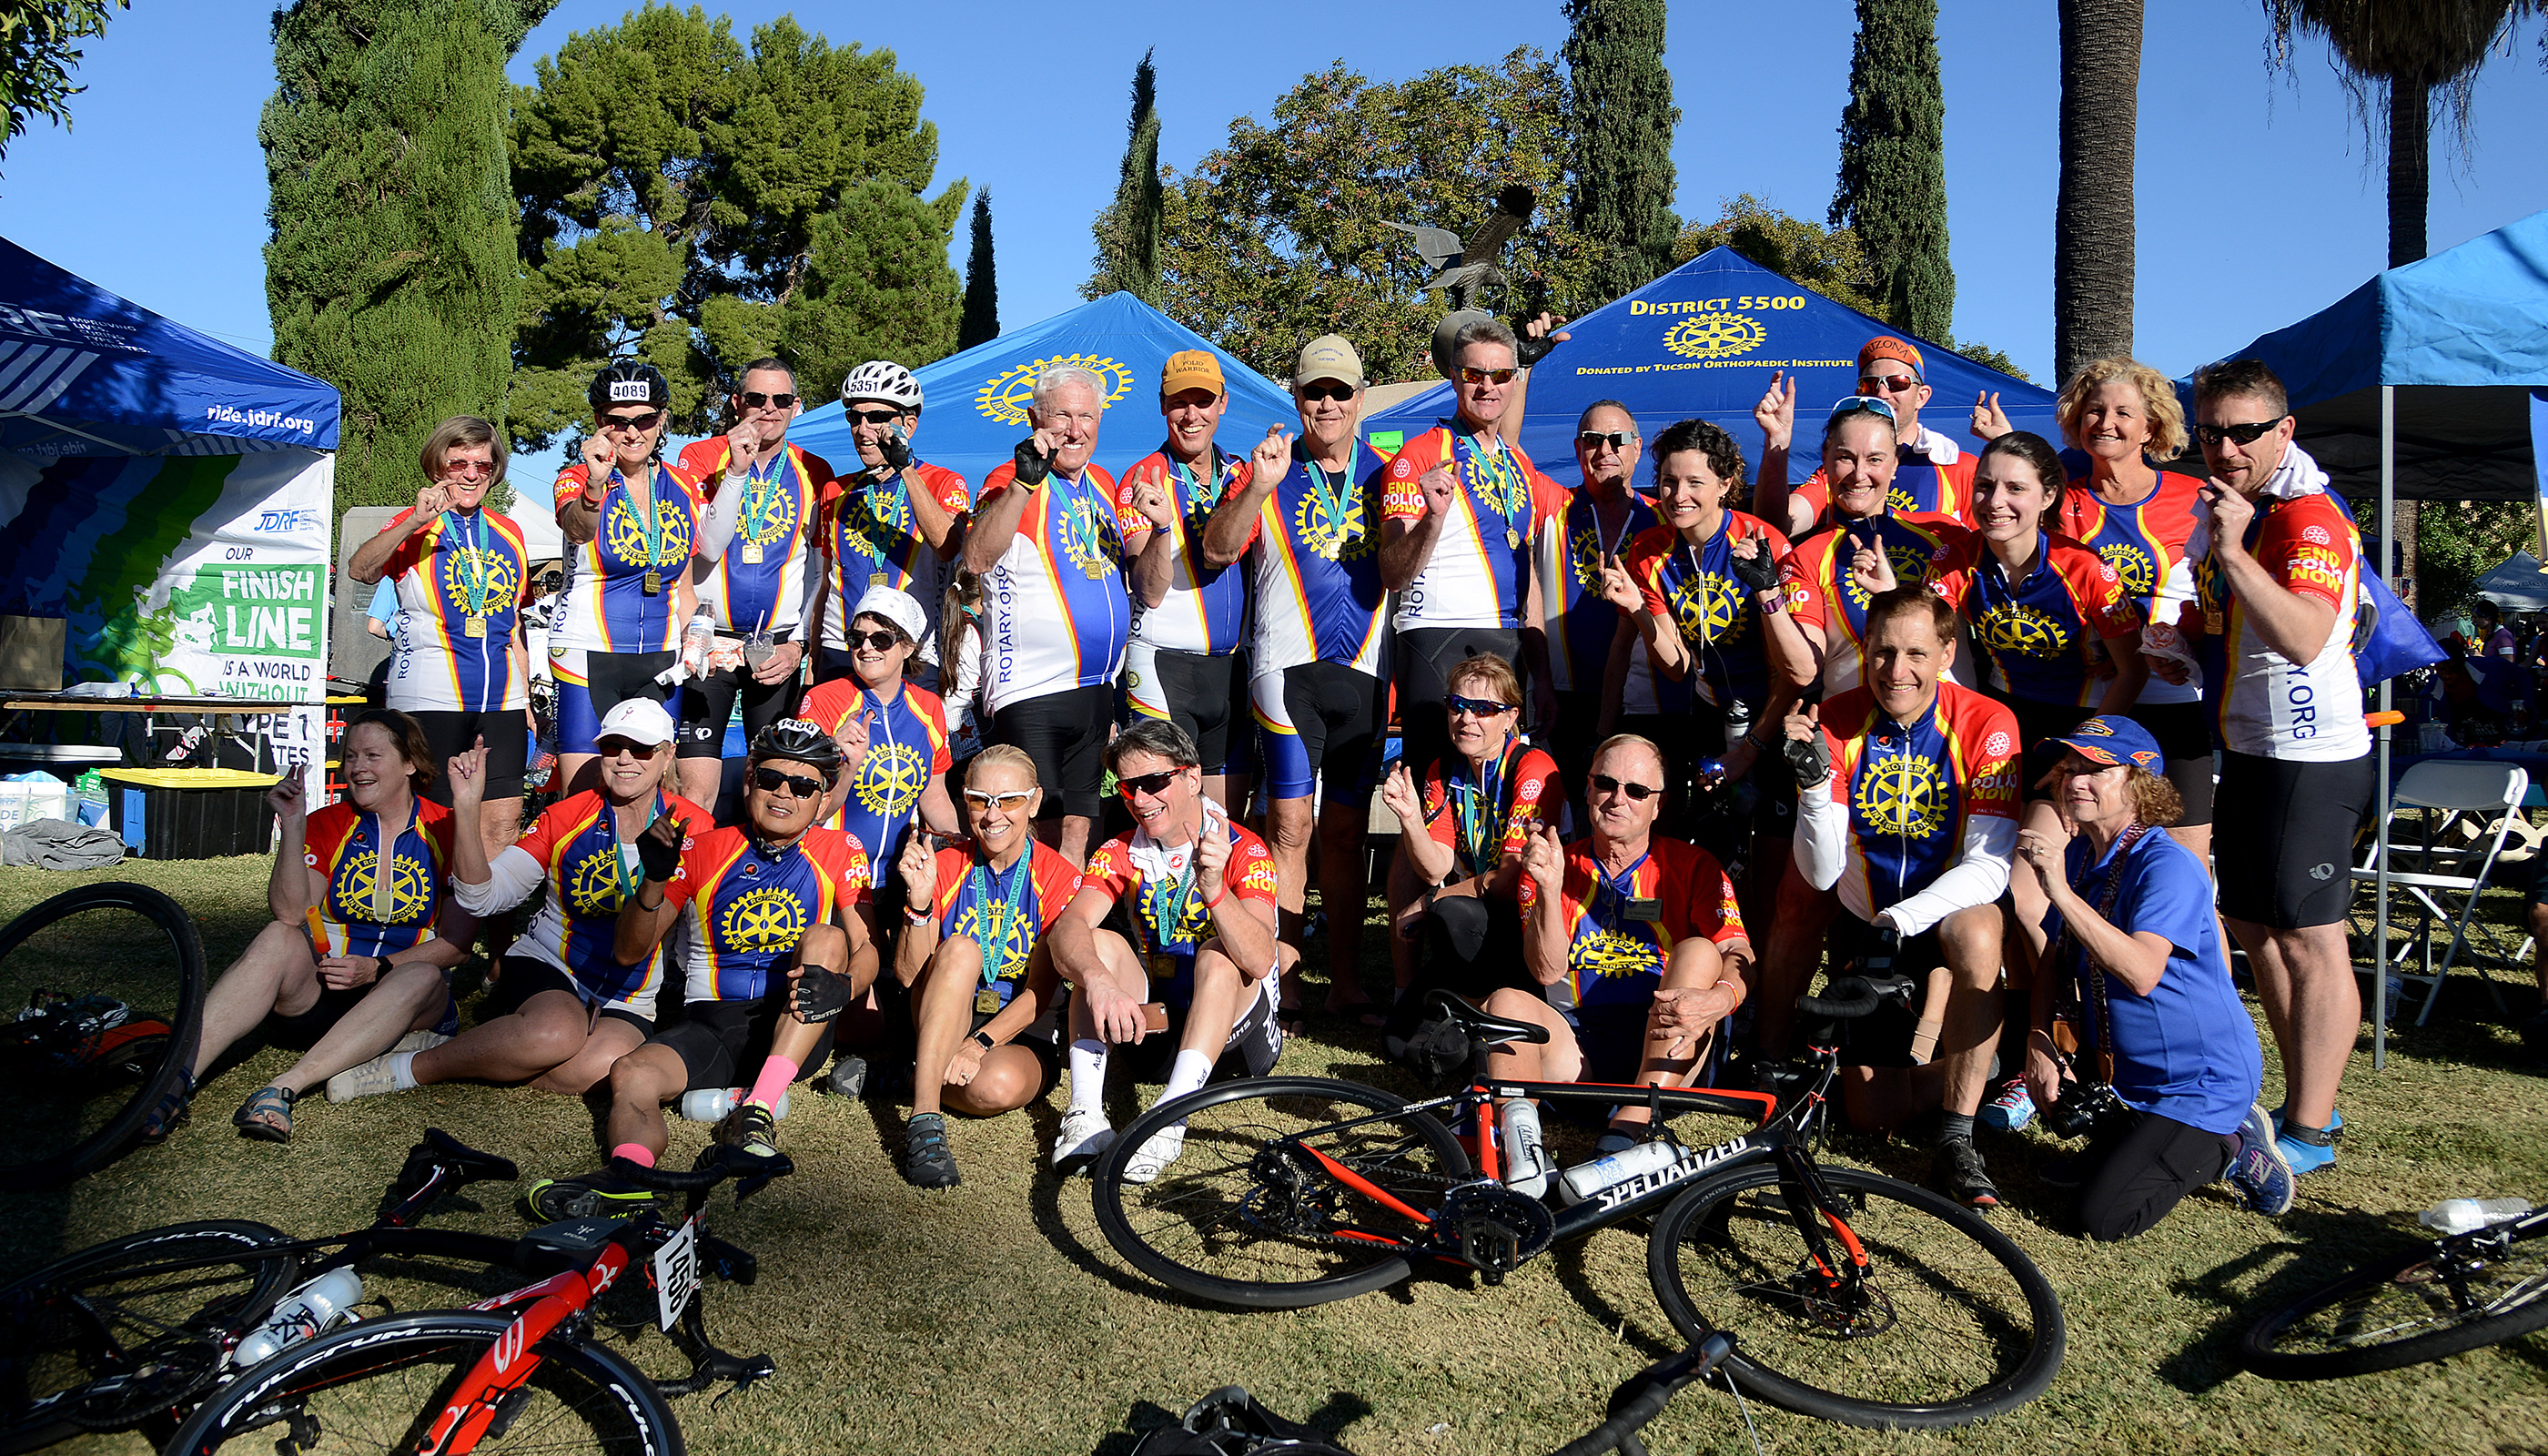 Images from the 2017 Ride to End Polio